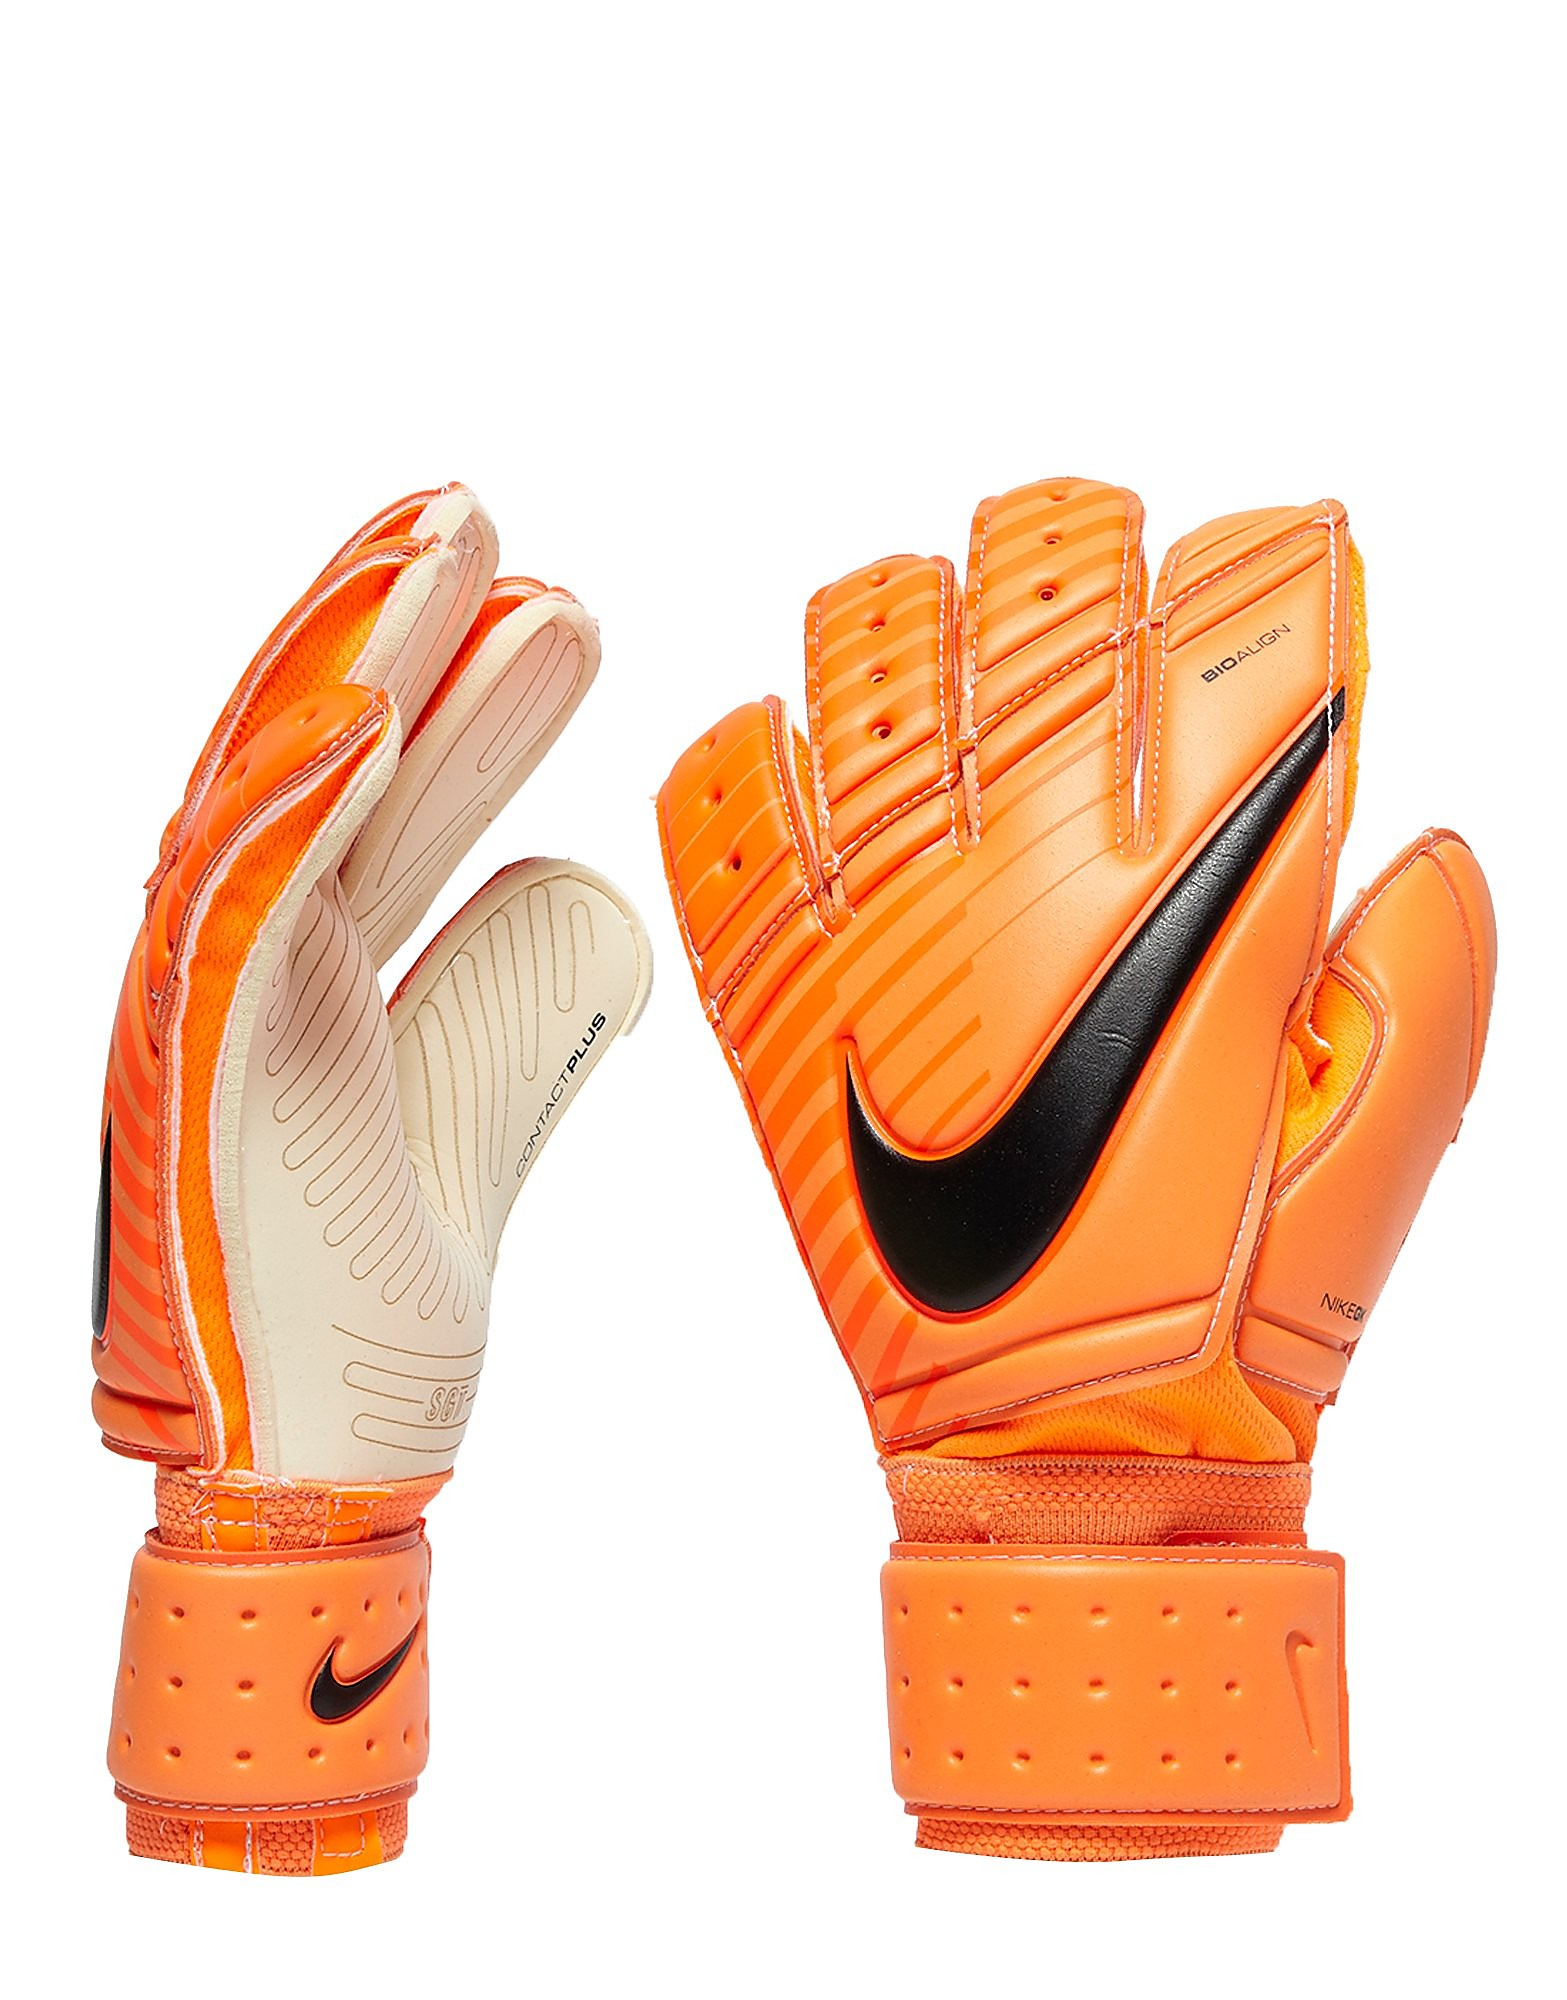 Nike Premier Goalkeeping Gloves